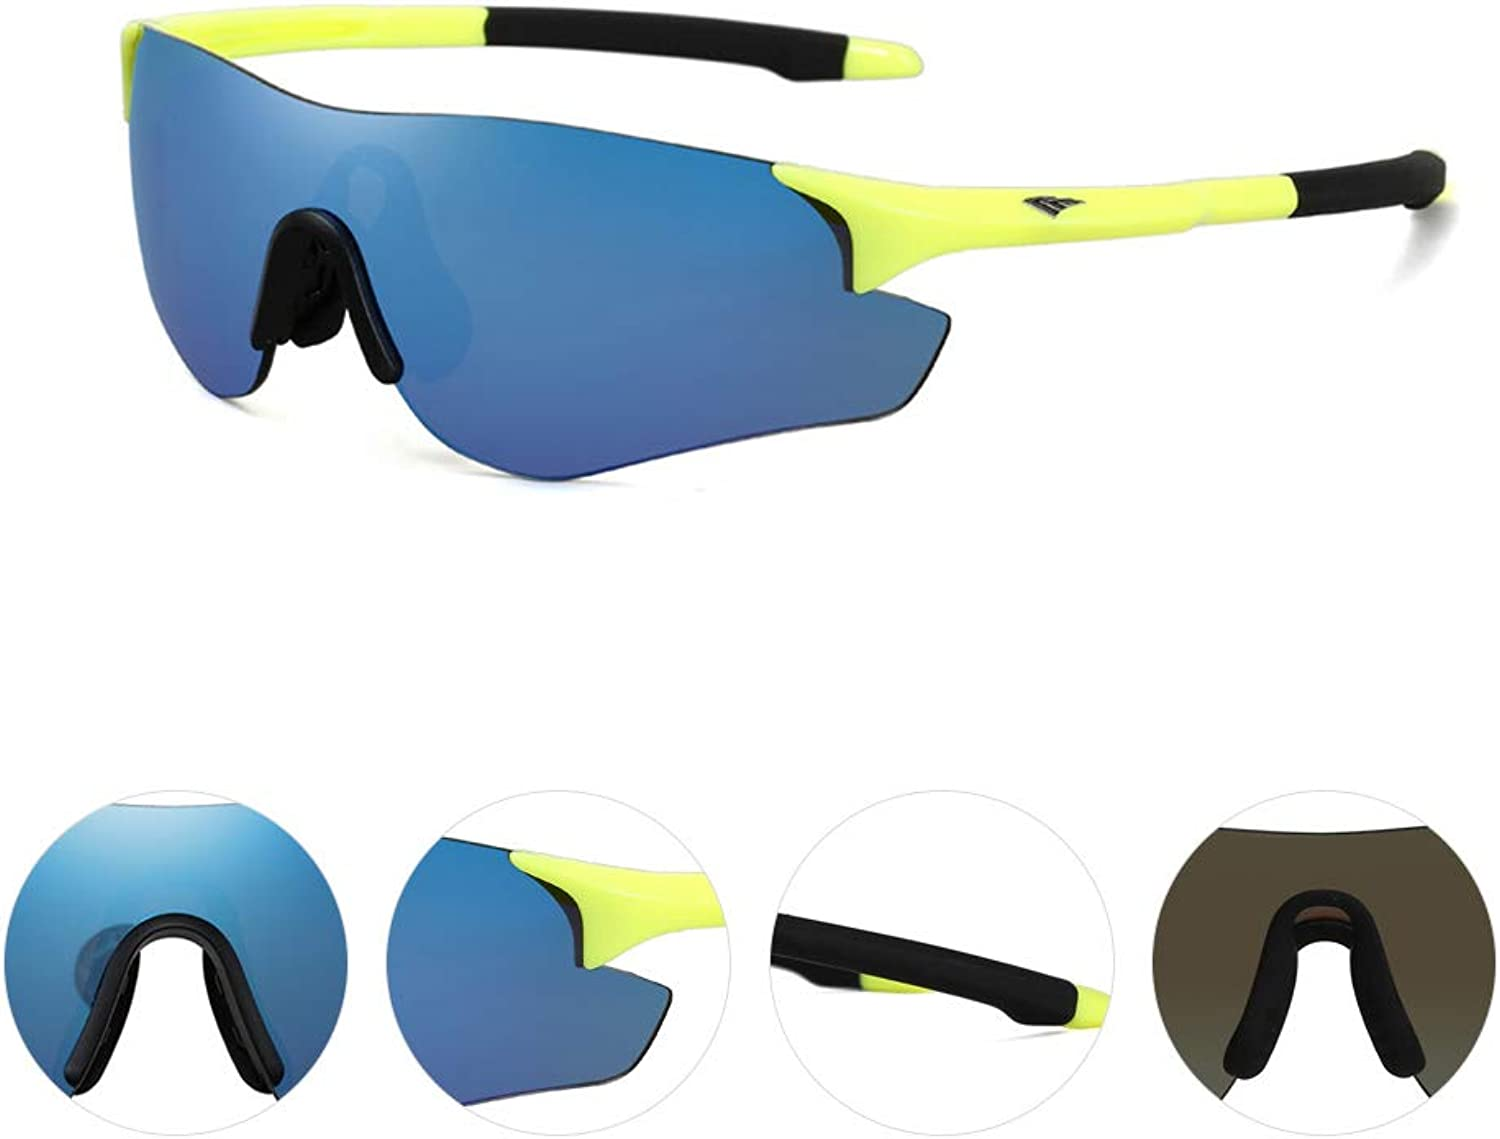 Gao Te outdo Marathon running glasses equipped sports glasses windproof eyes men and women outdoor sunglasses GT61003